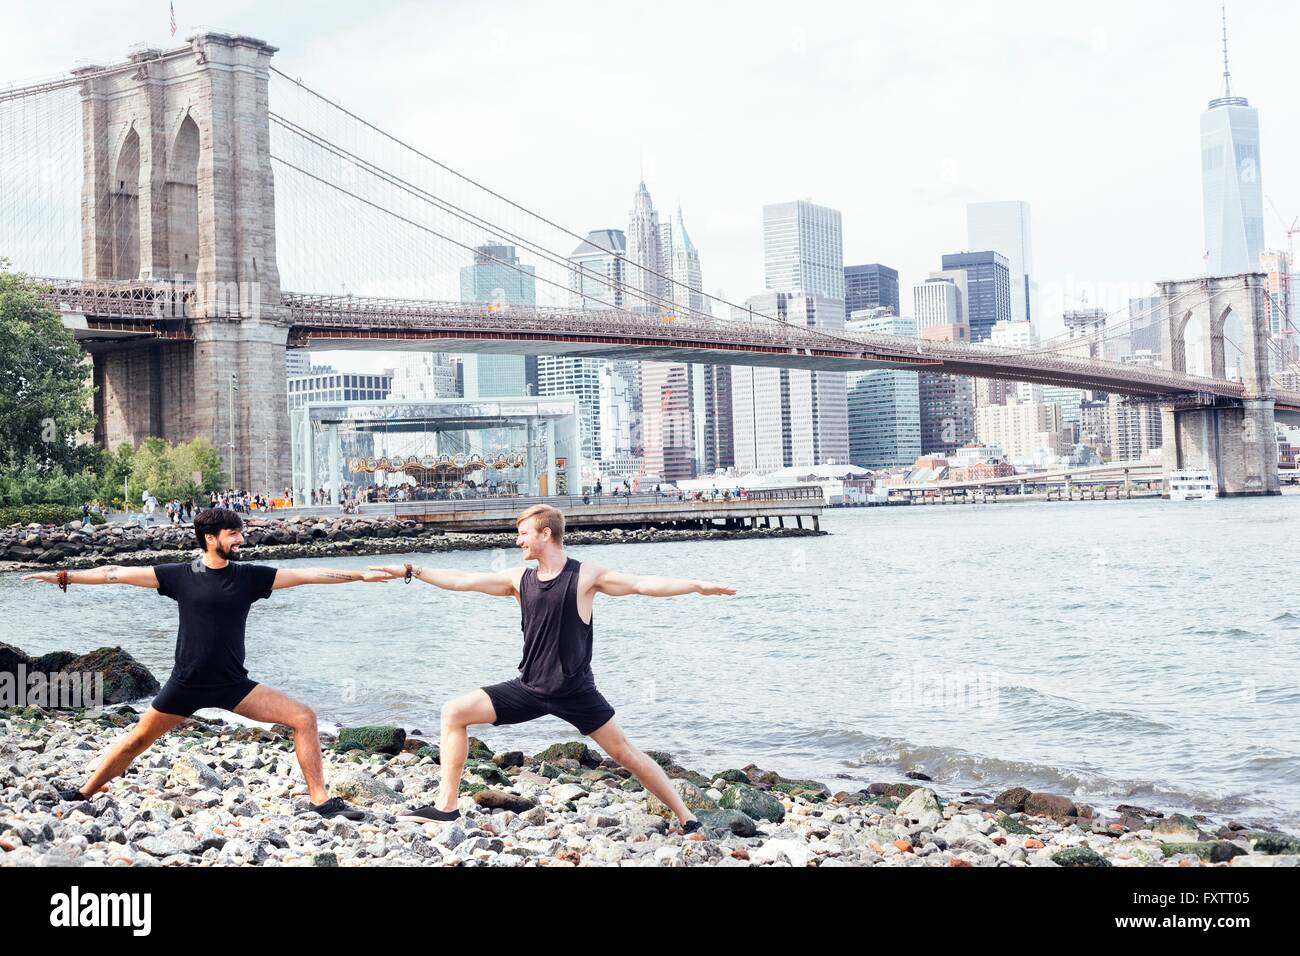 Two men practicing yoga on riverside in front of Brooklyn Bridge, New York, USA Stock Photo